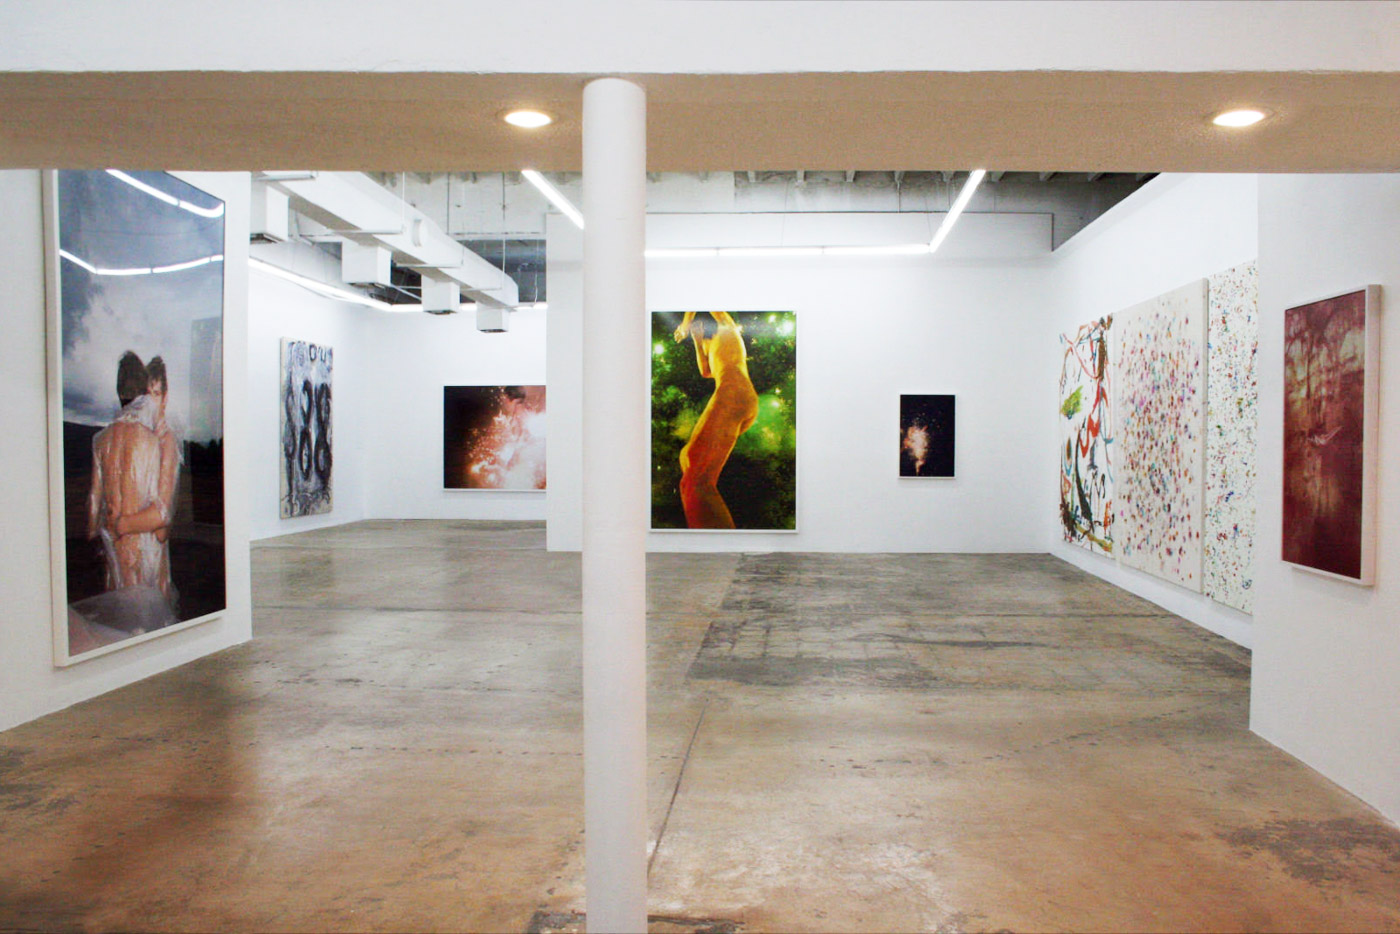 2011_The_Trilogy_Exhibition_The_Ring_Art_Center_Miami_FL_4_web.jpg